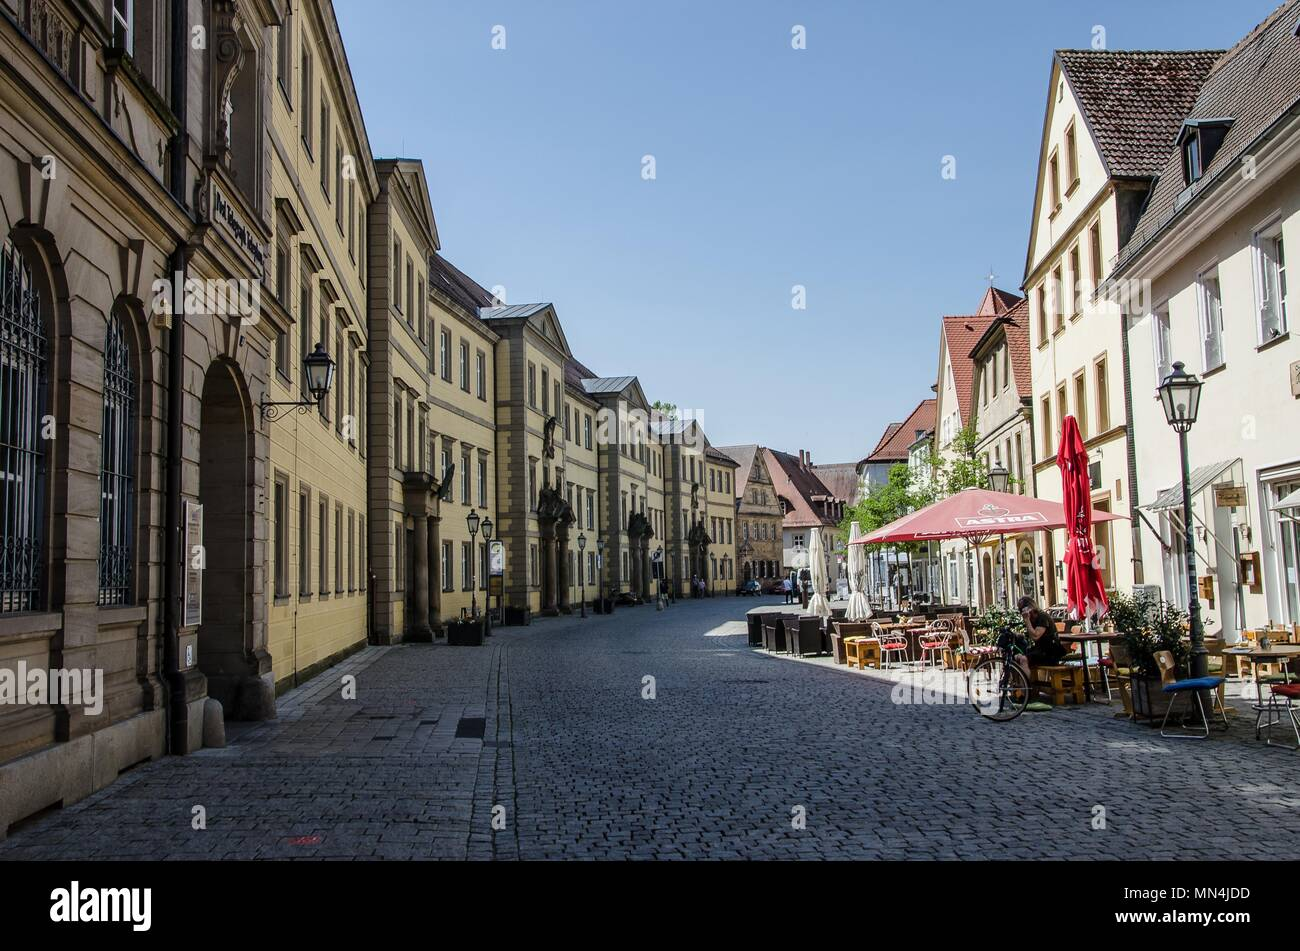 Bayreuth is a city that has historically grown as a Margravial Residence and is in the meantime world famous because of the Richard Wagner Festival. - Stock Image